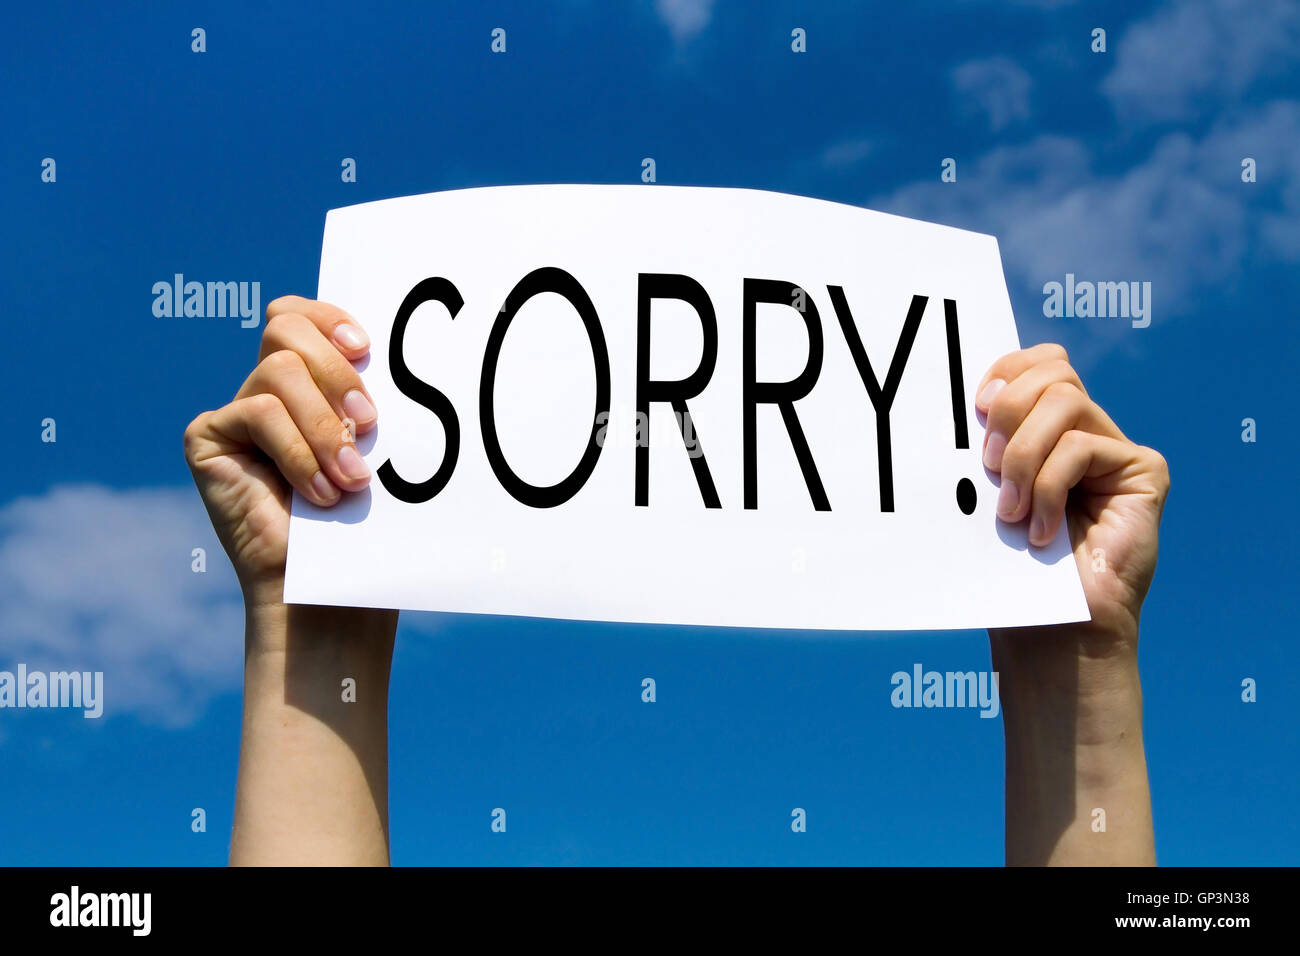 sorry, concept, hands holding sign in blue sky - Stock Image